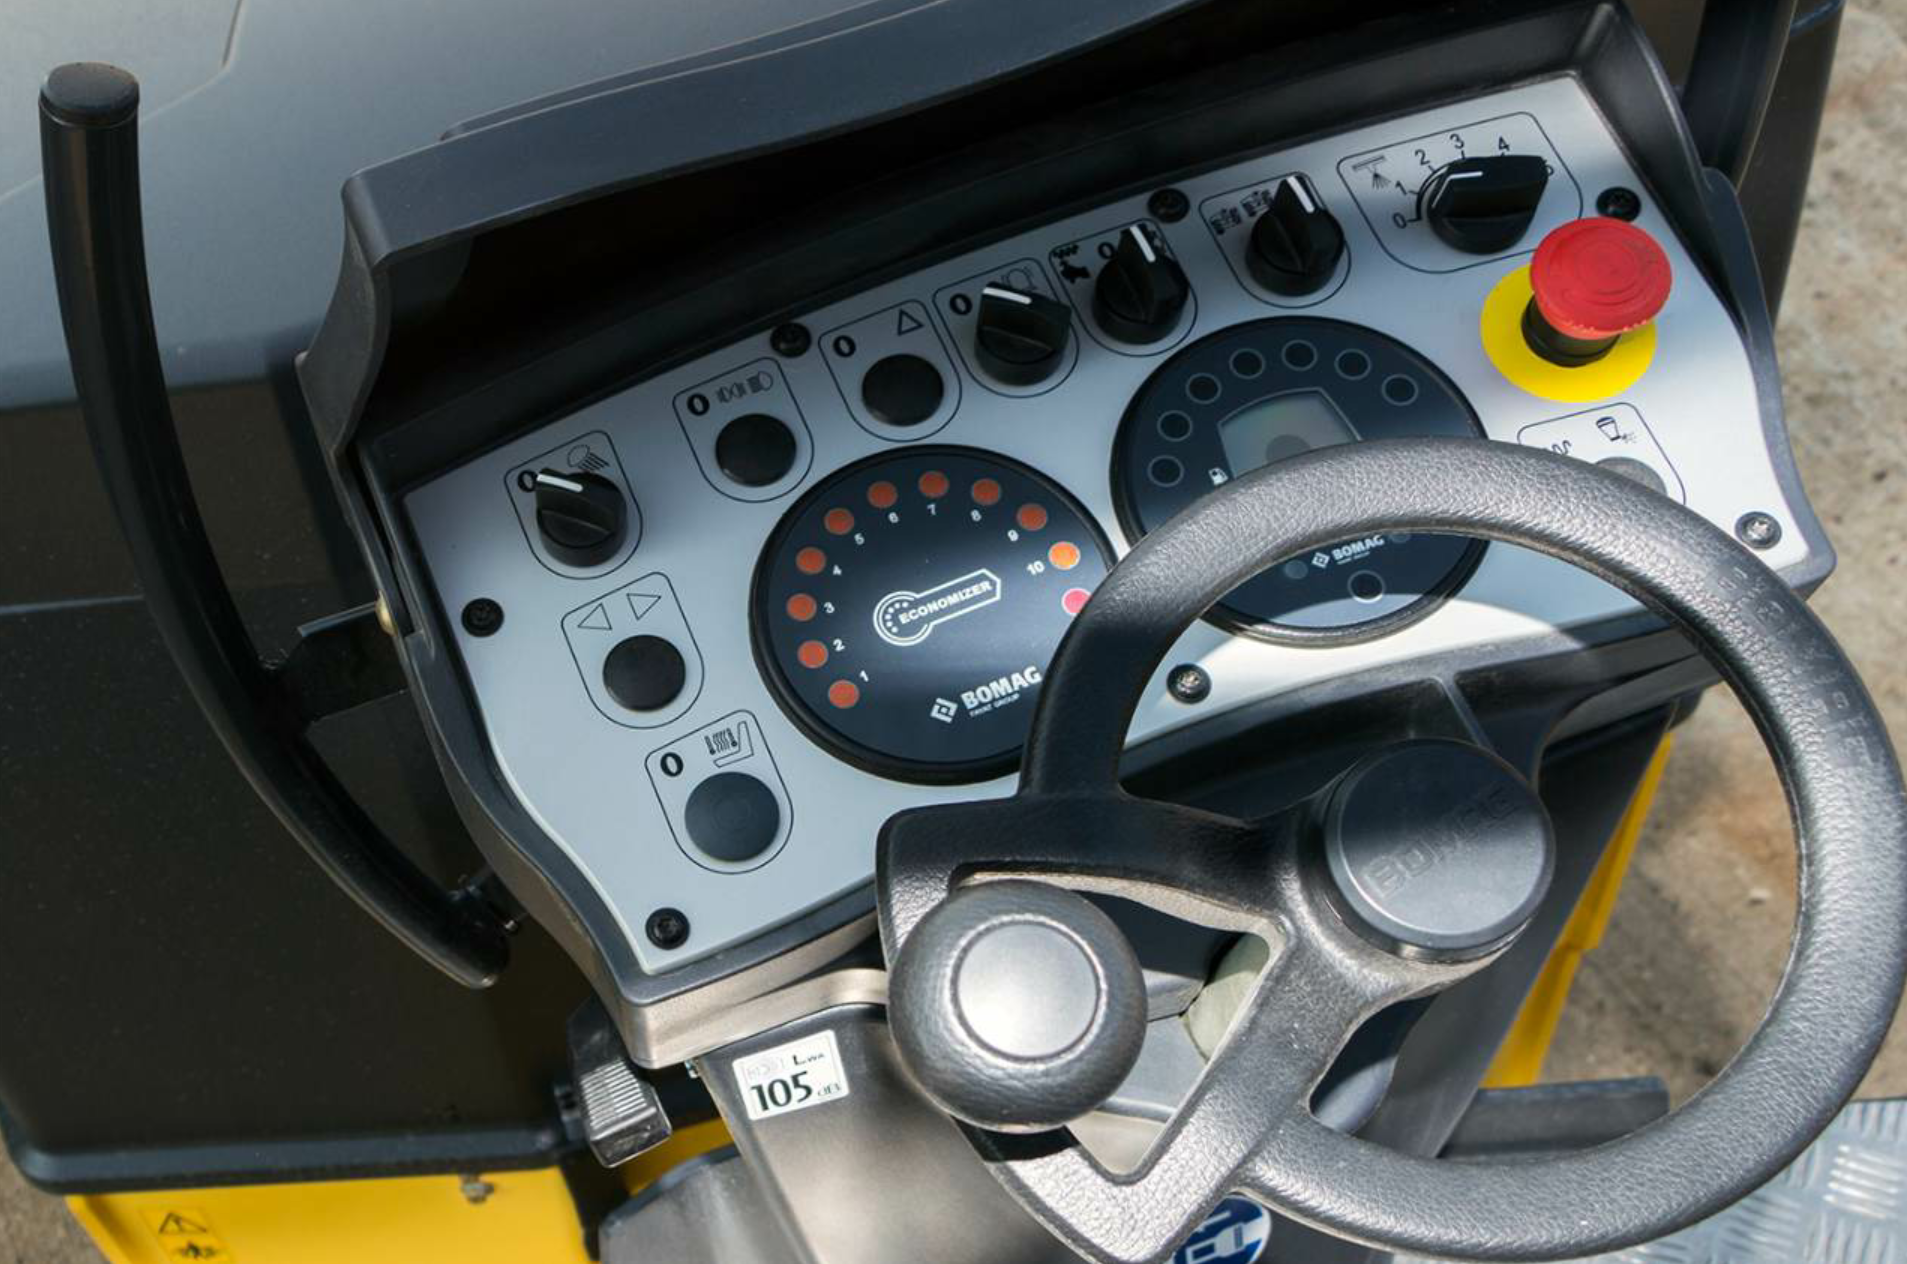 BOMAG Americas' Economizer, available for any compaction equipment, features a dial display at the operator's station and uses a monitoring device to track mat stiffness. Photo courtesy Bomag Americas, Ridgeway, South Carolina.